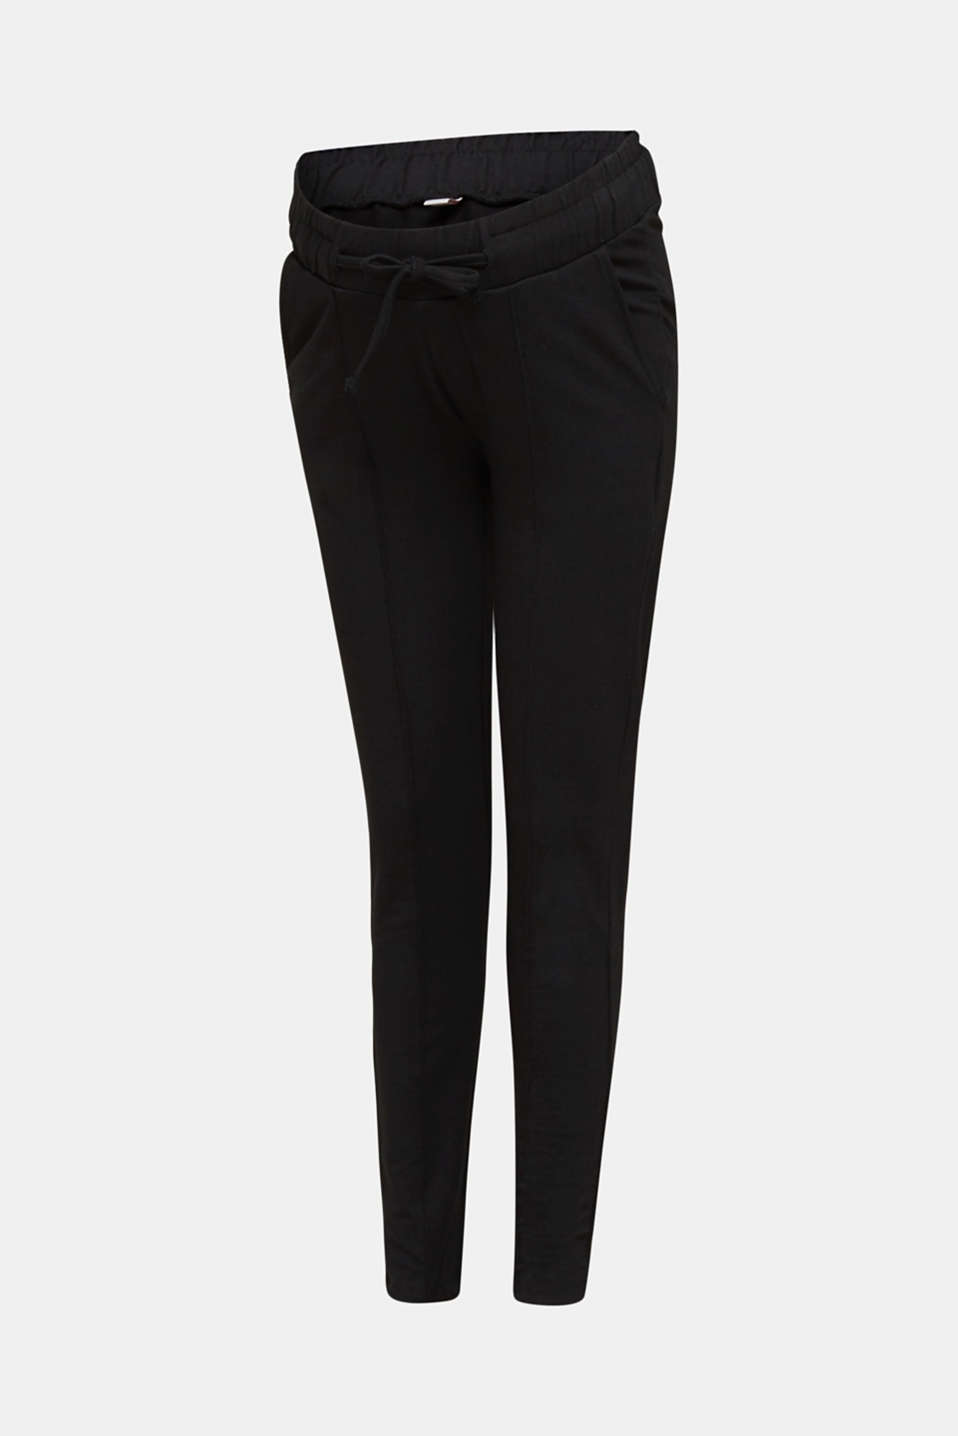 Stretch jersey trousers with under-bump waistband, LCBLACK, detail image number 7